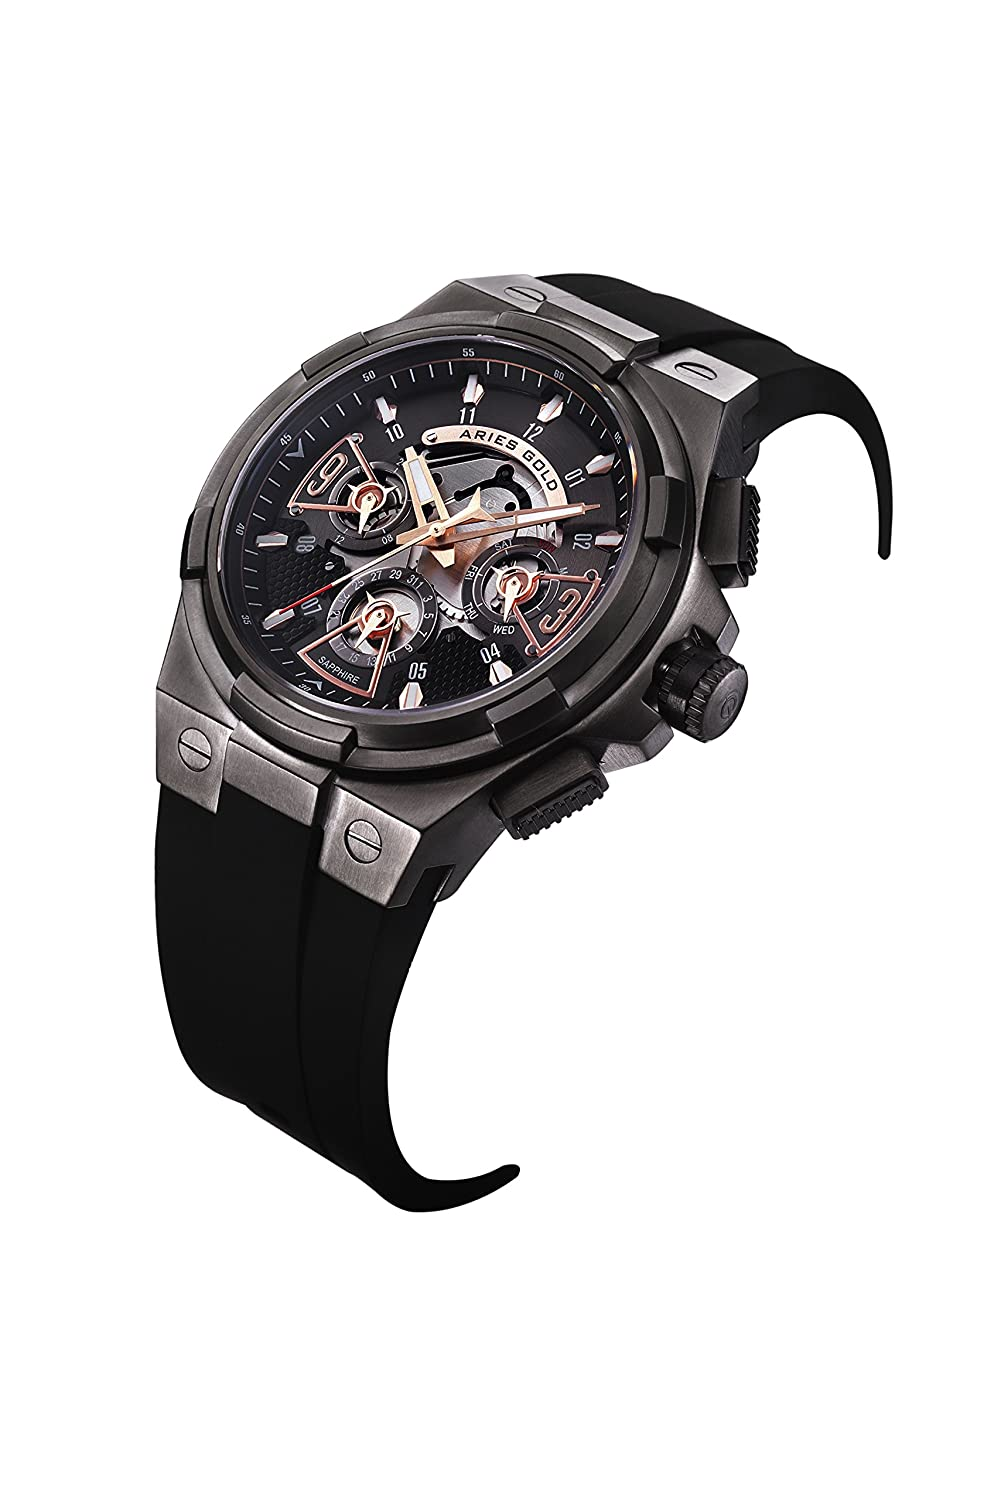 Amazon.com: Aries Gold│LIGHTNING│G 7003 BK-BKRG│Mens Wrist Watch│High-Tech Silicone Strap│Layered Dial - Black Rose Gold: Watches